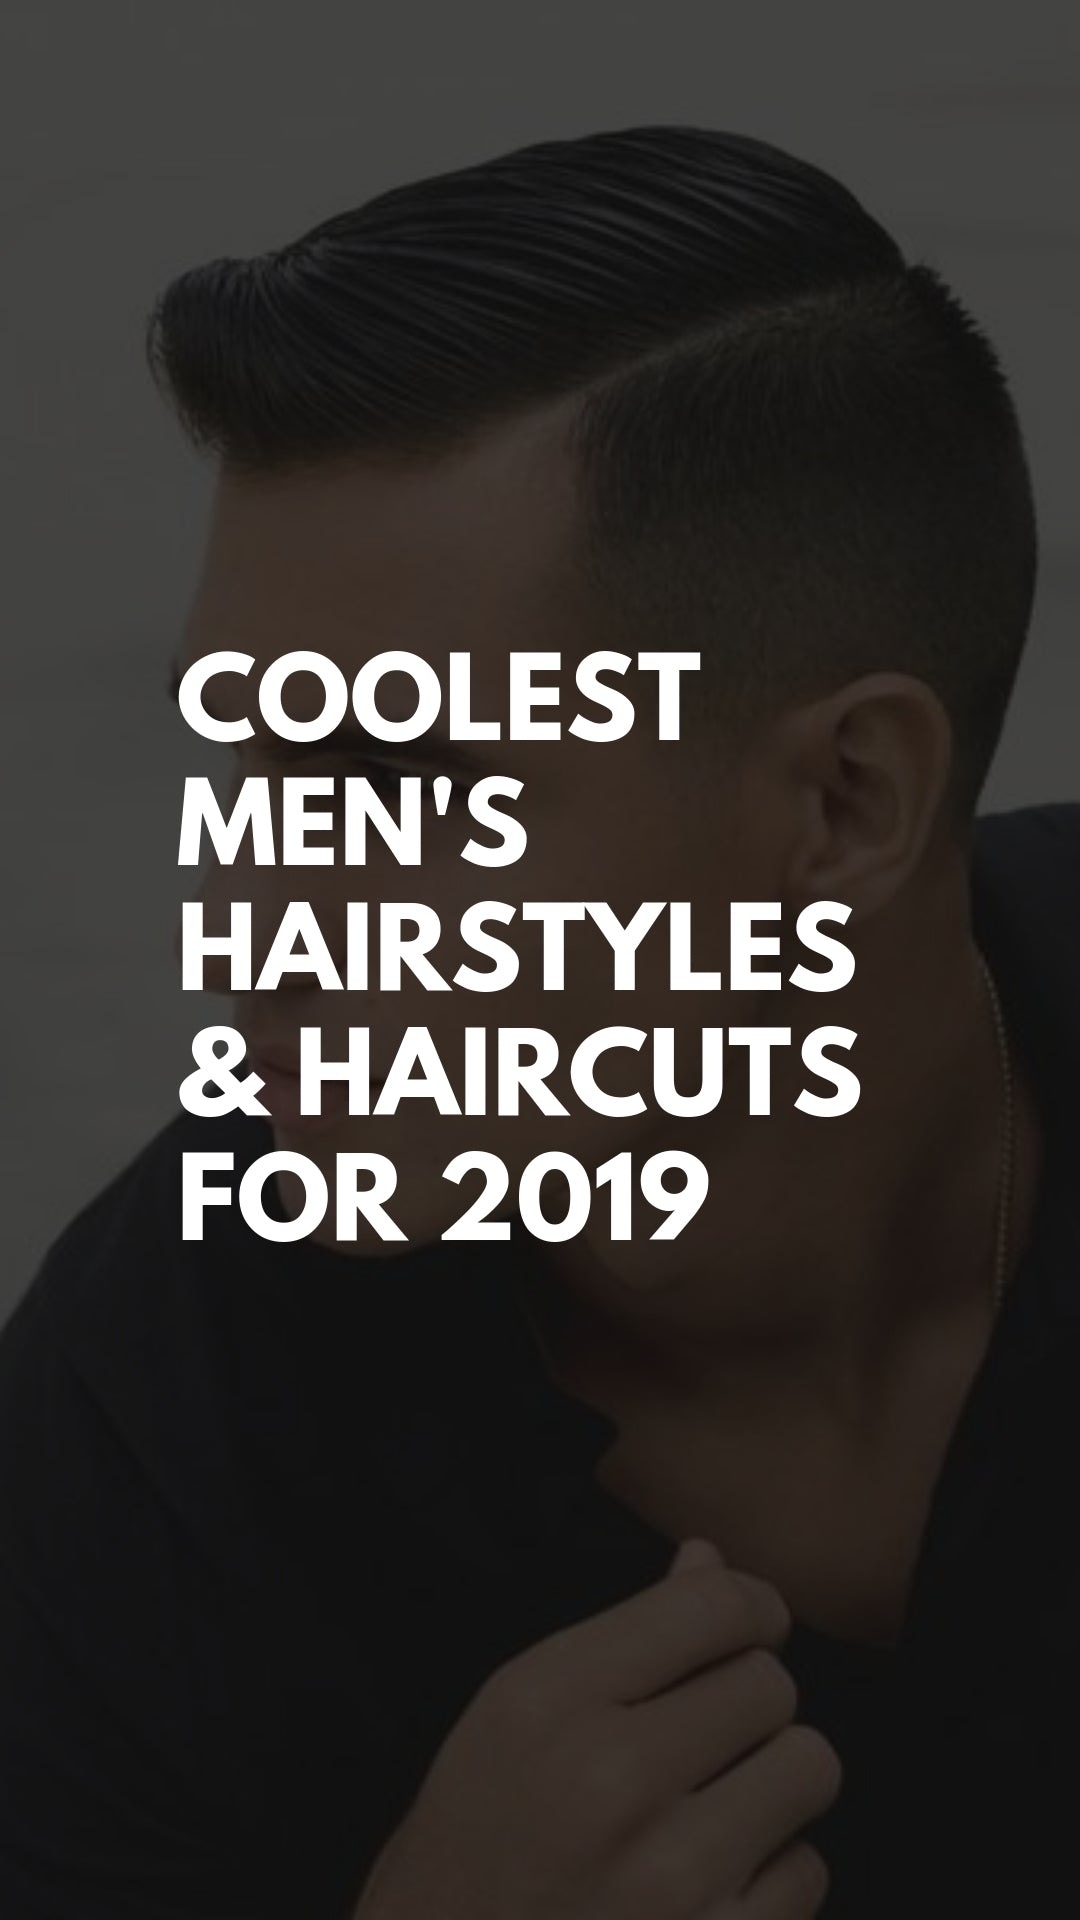 BEST MEN'S HAIRCUTS FOR 2019 #hairstyles #haircuts #2019